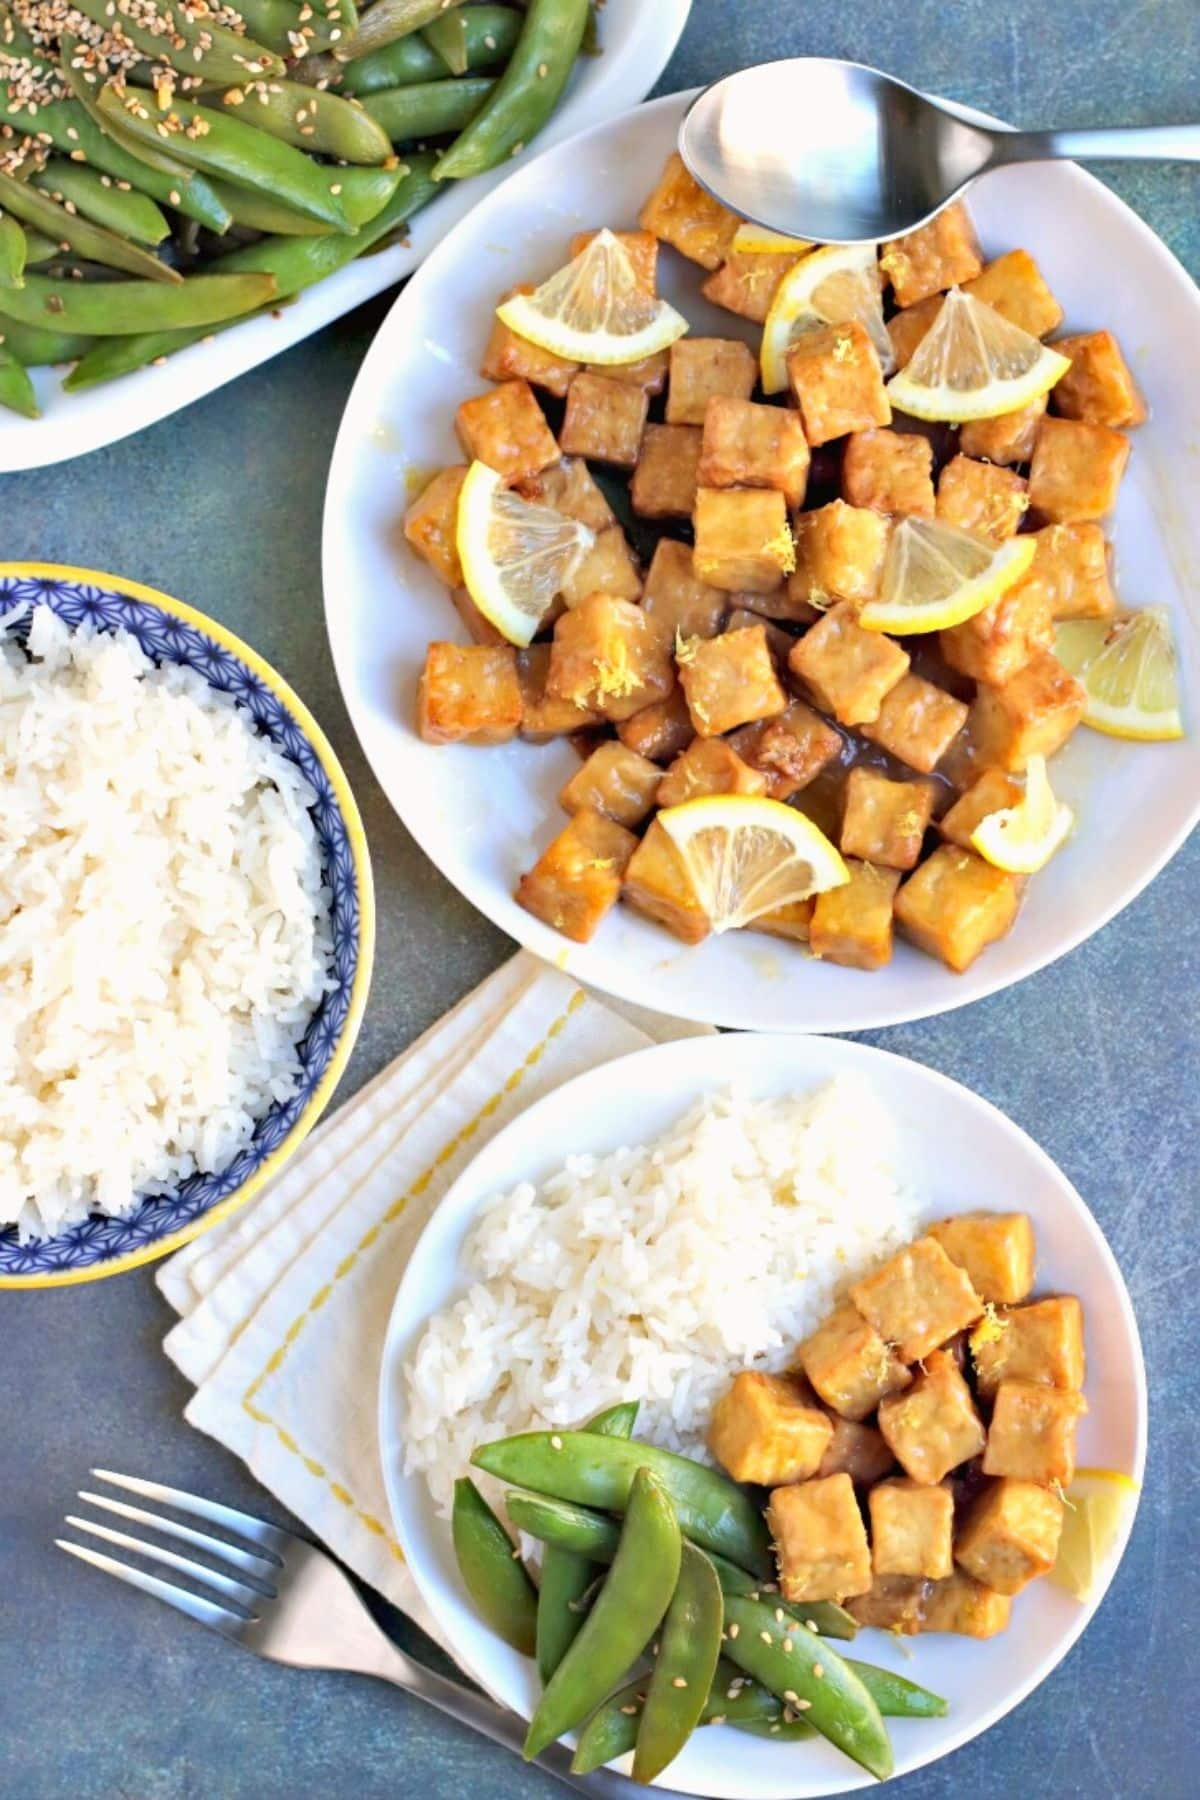 Platter of tofu with lemon sauce, bowl of rice, and dinner plate with rice, tofu, and sugar snap peas